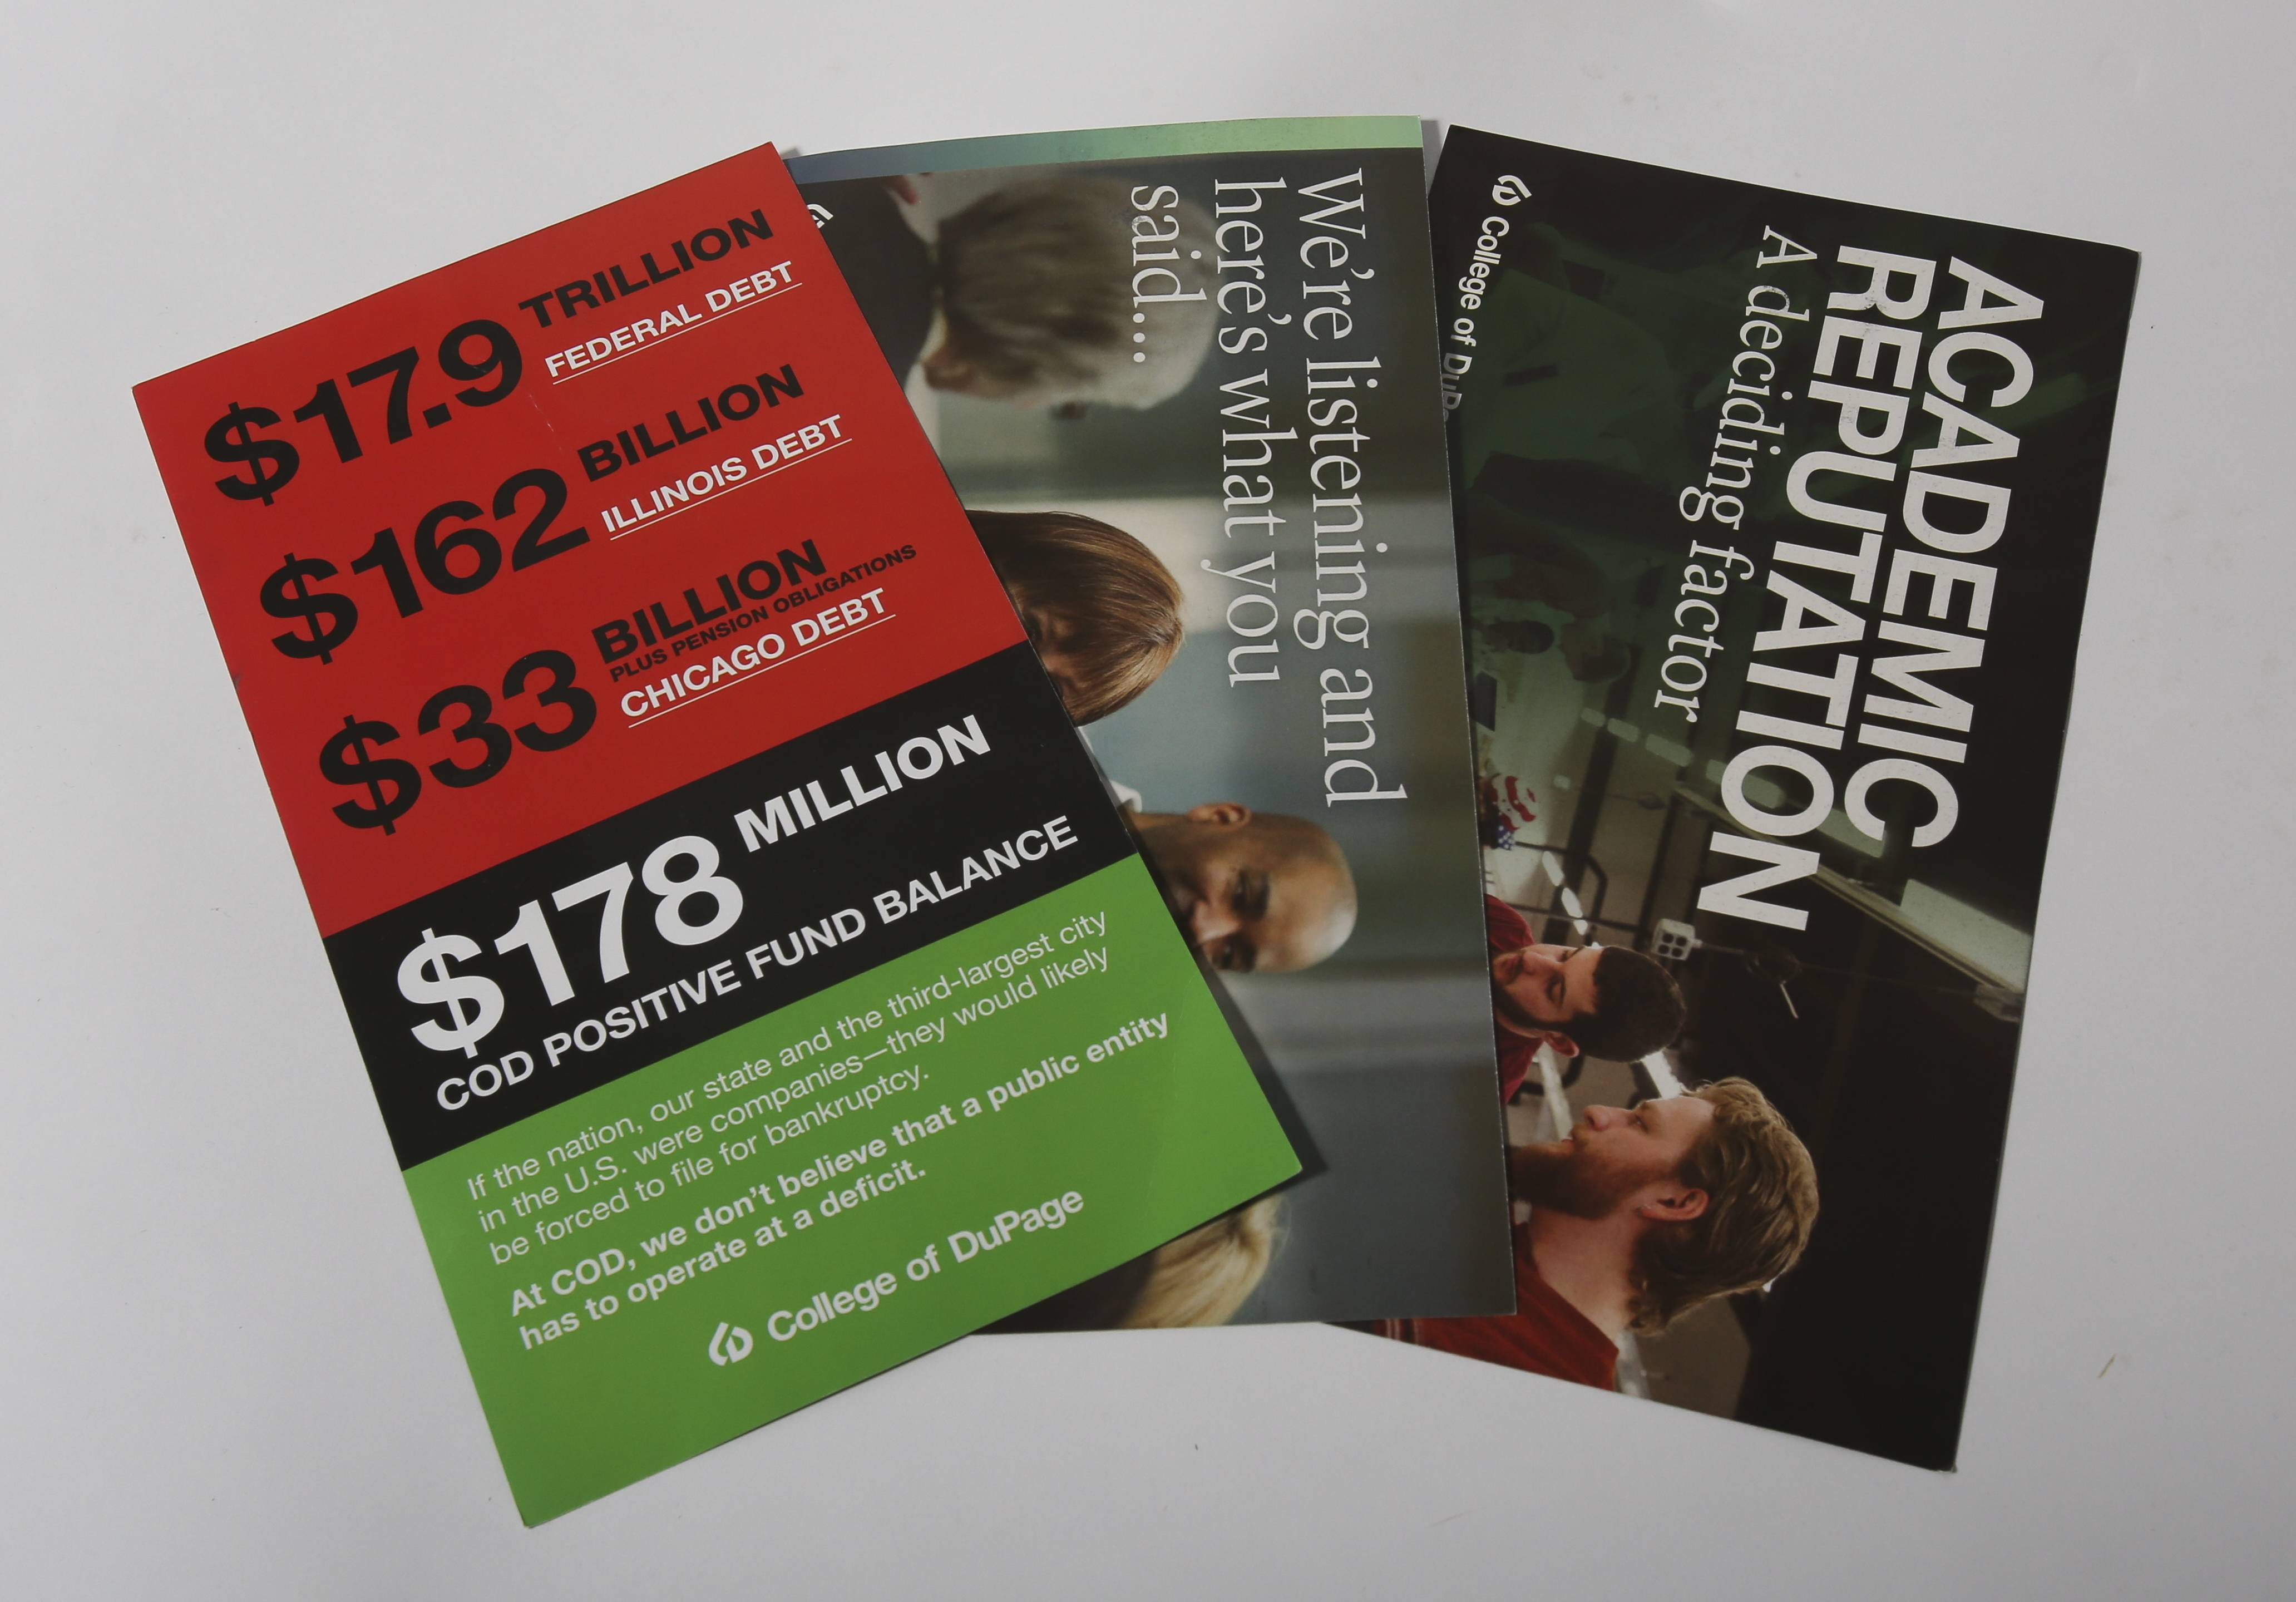 College of DuPage spent more than $200,000 on positive pre-election mailers, documents show